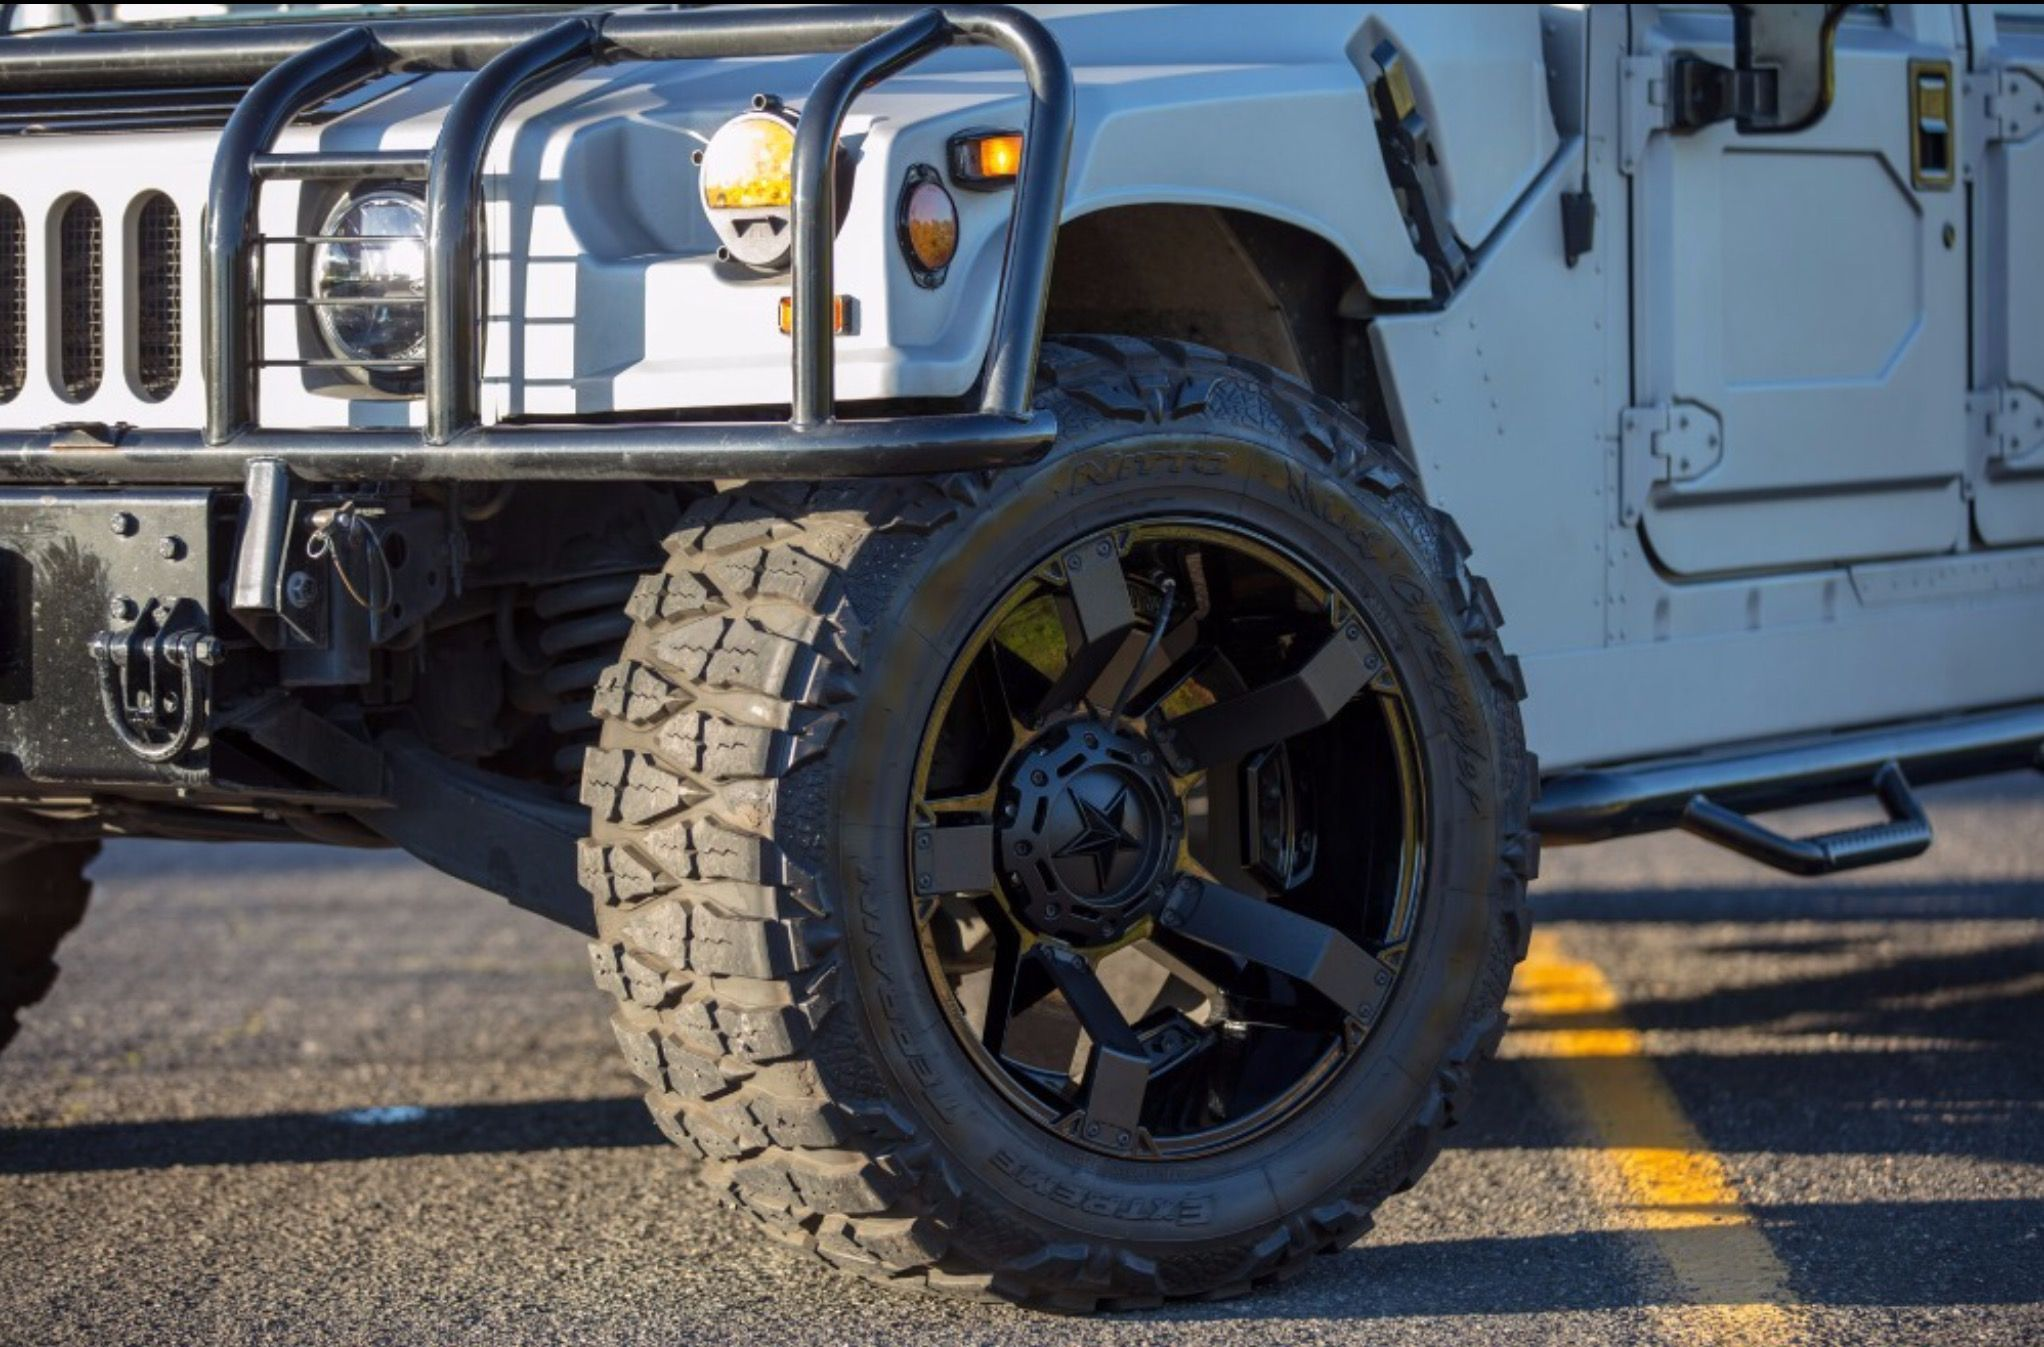 Pin by Mauricio Gonzalez on EVERYTHING HUMMER H1